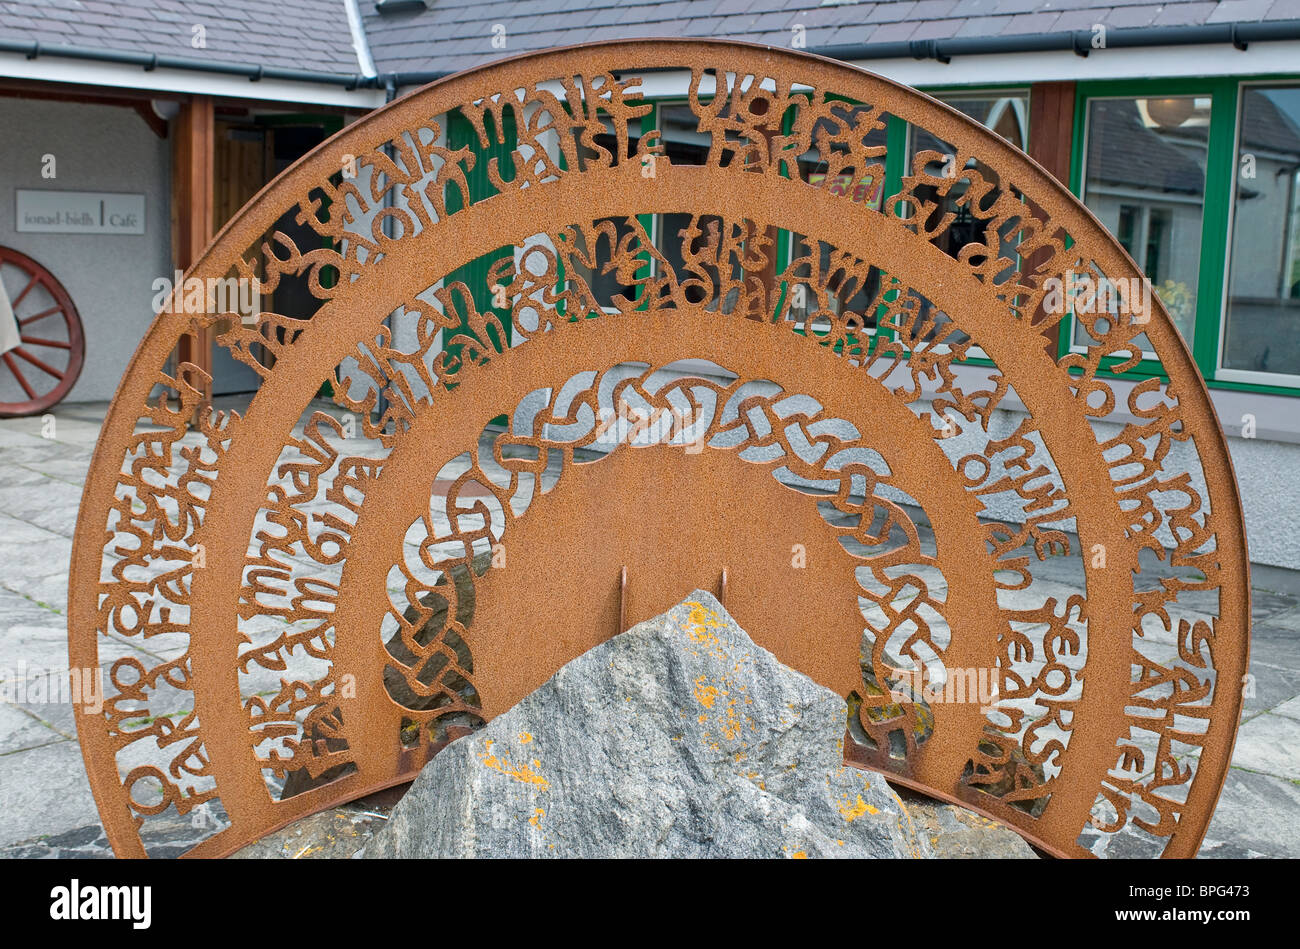 Metal Sculpture set in local rock at the Kildonan Visitor Centre South Uist, Outer Hebrides. Scotland. SCO 6471 - Stock Image